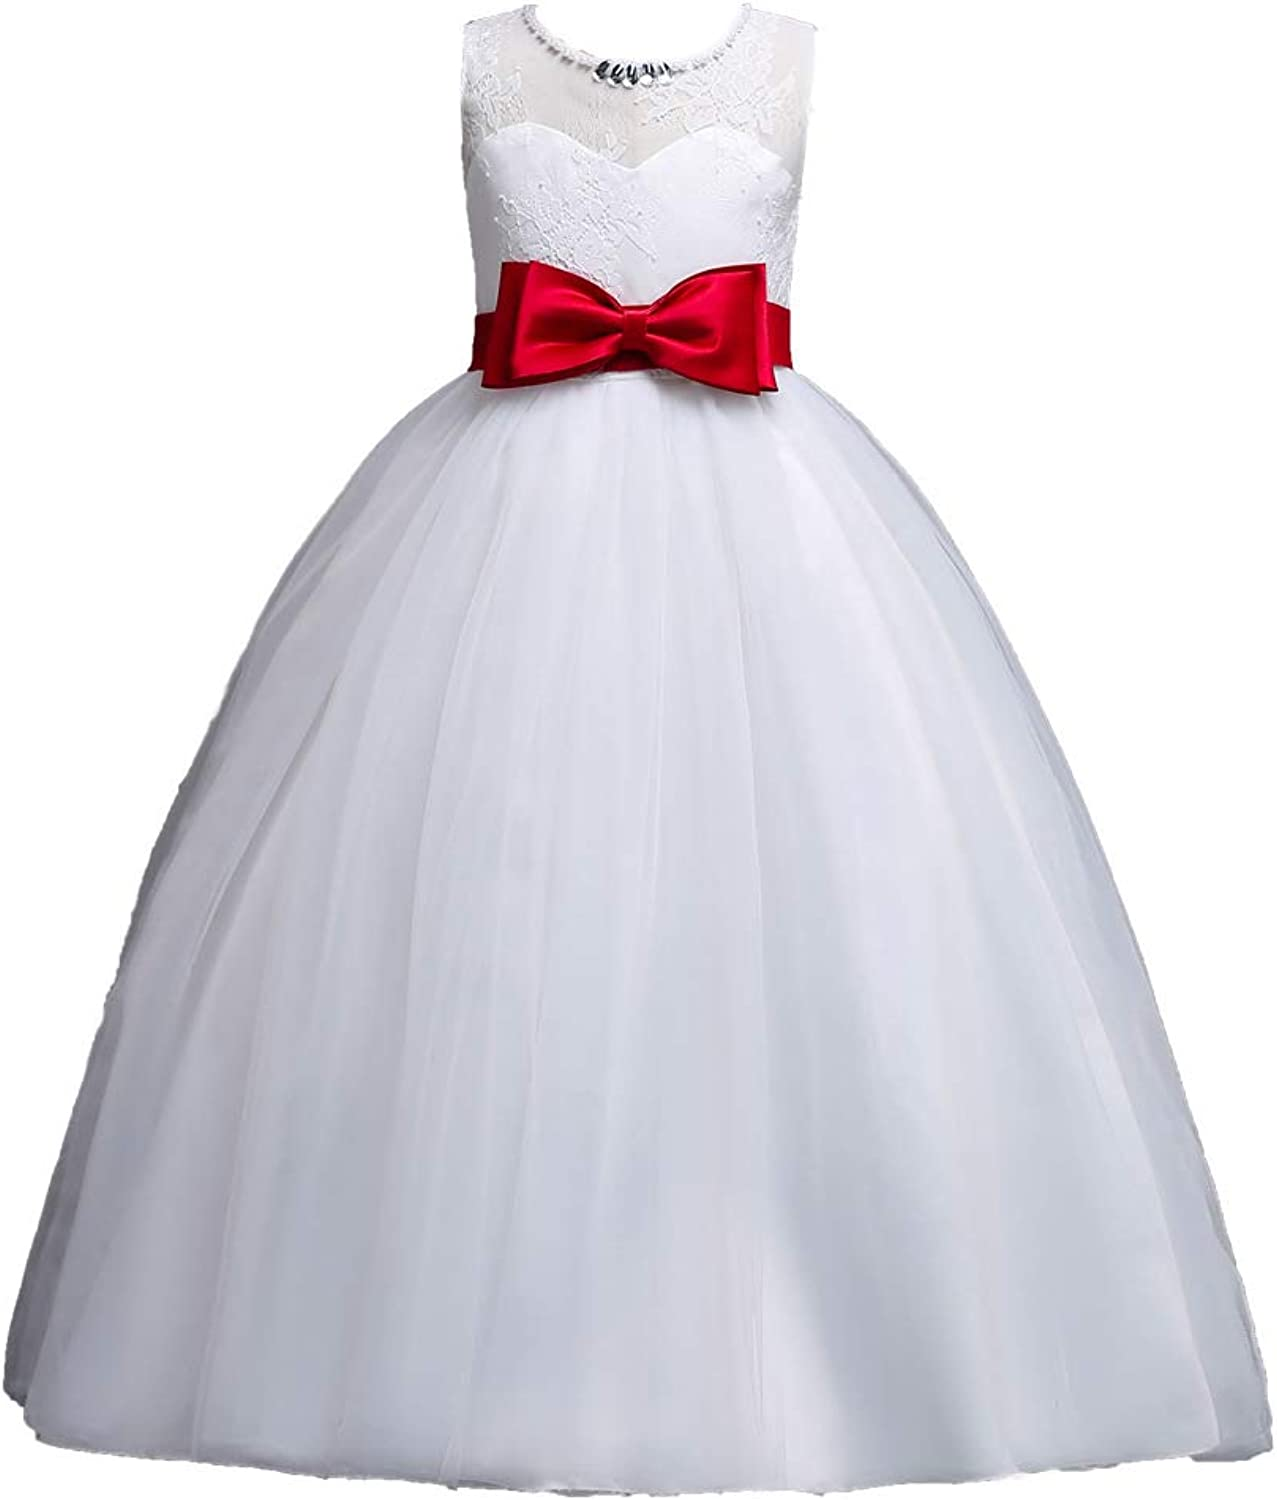 GIFT ZHIZHUXIA Wedding Bridesmaid Birthday Evening Party Girls Sleeveless White Dress Kids Mesh Princess Puffy Dresses With Bowknot Christmas Party Dress props ( color   RED , Size   140CM )